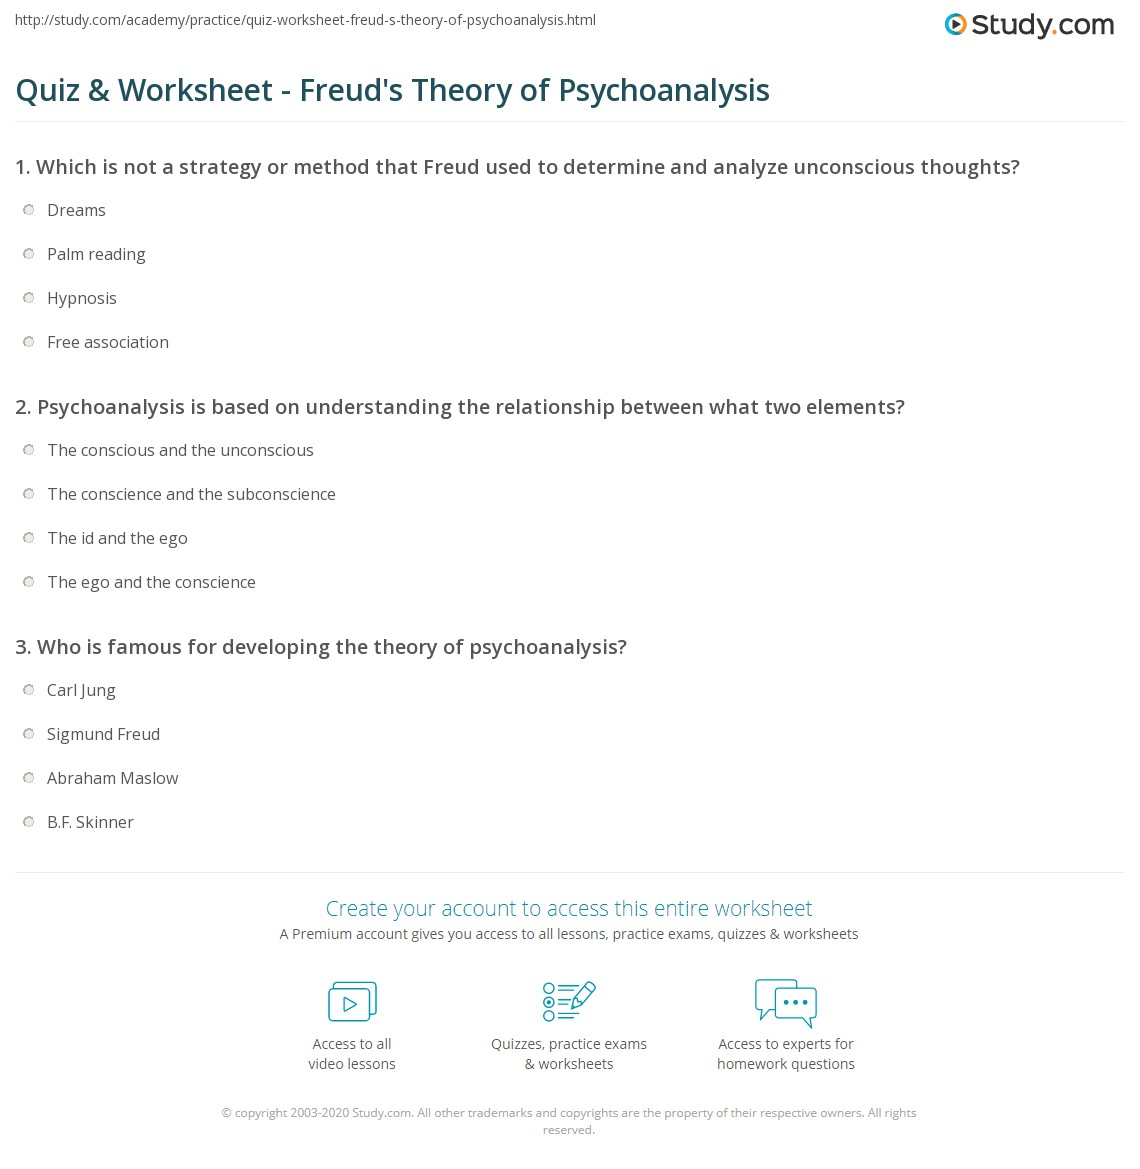 """psychoanalytical perspective of the awakening P r e s t w i c k ho u s e, in c31 multiple critical the awakening perspectives notes on the psychoanalytic theory t h e terms """"p syc h ological,"""" or """"p syc h oanalytical,"""" or """"freudian theory"""" seem to encompass essentially two almost contradic-tory critical theories."""